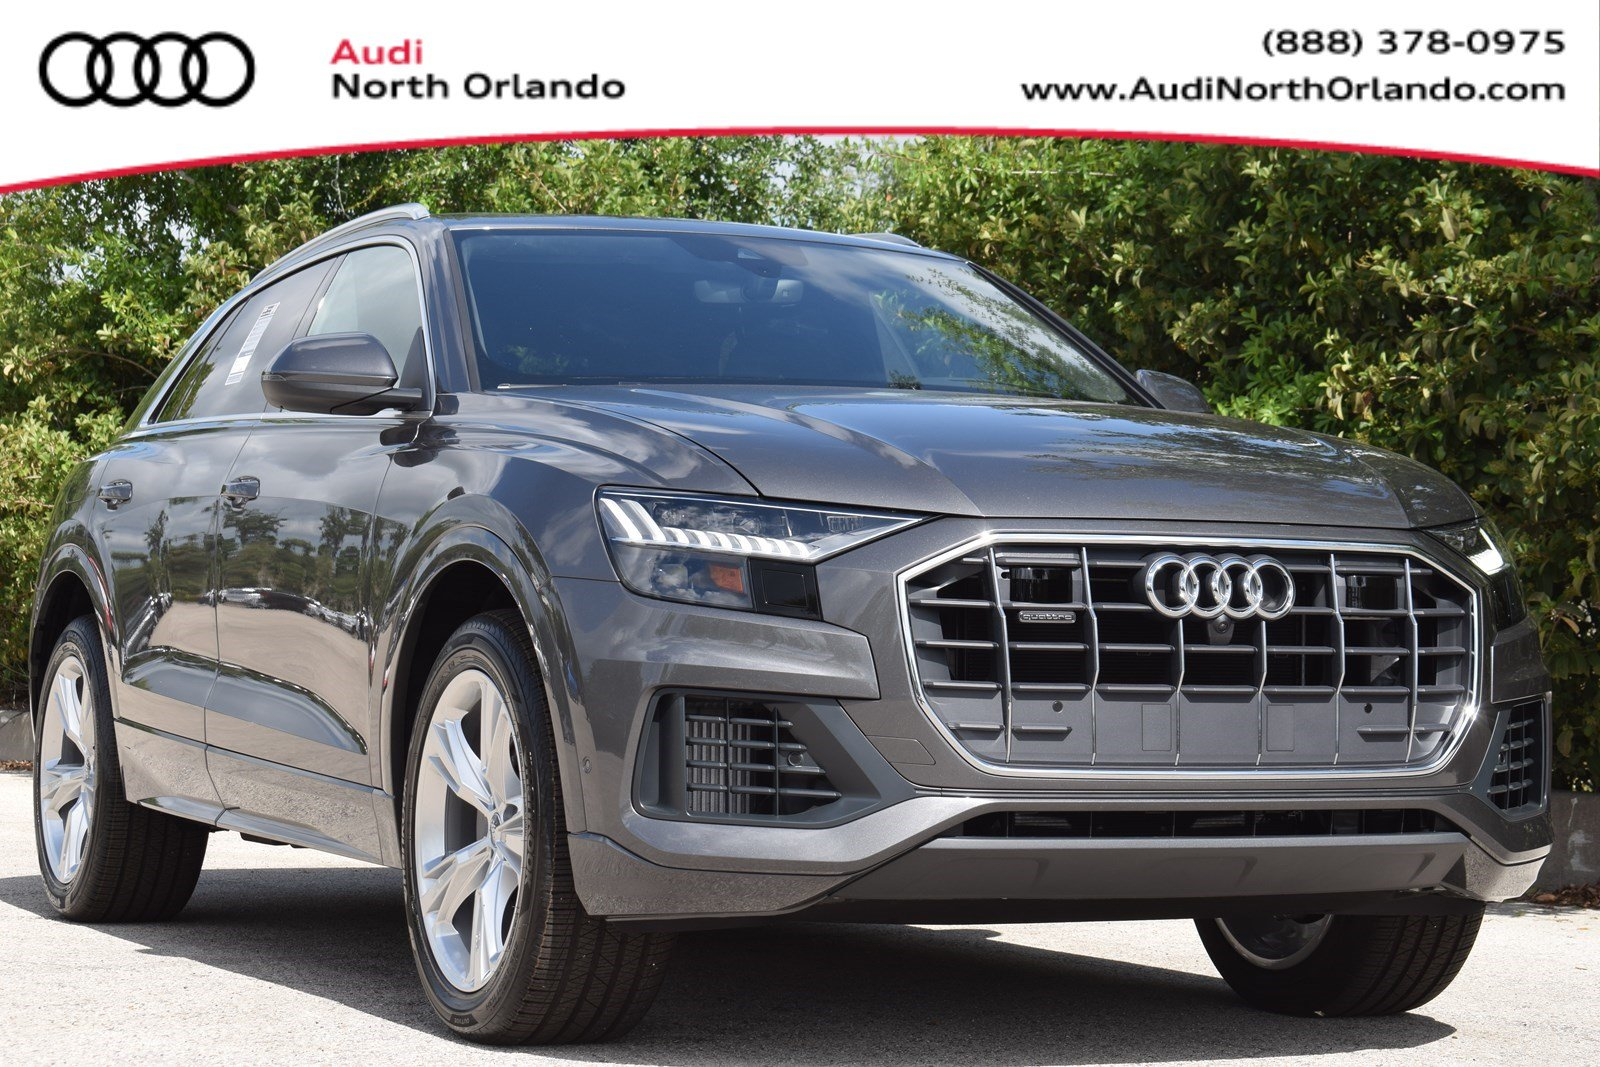 Featured new 2019 Audi Q8 3.0T Prestige SUV for sale in Sanford, FL, near Orlando, FL.